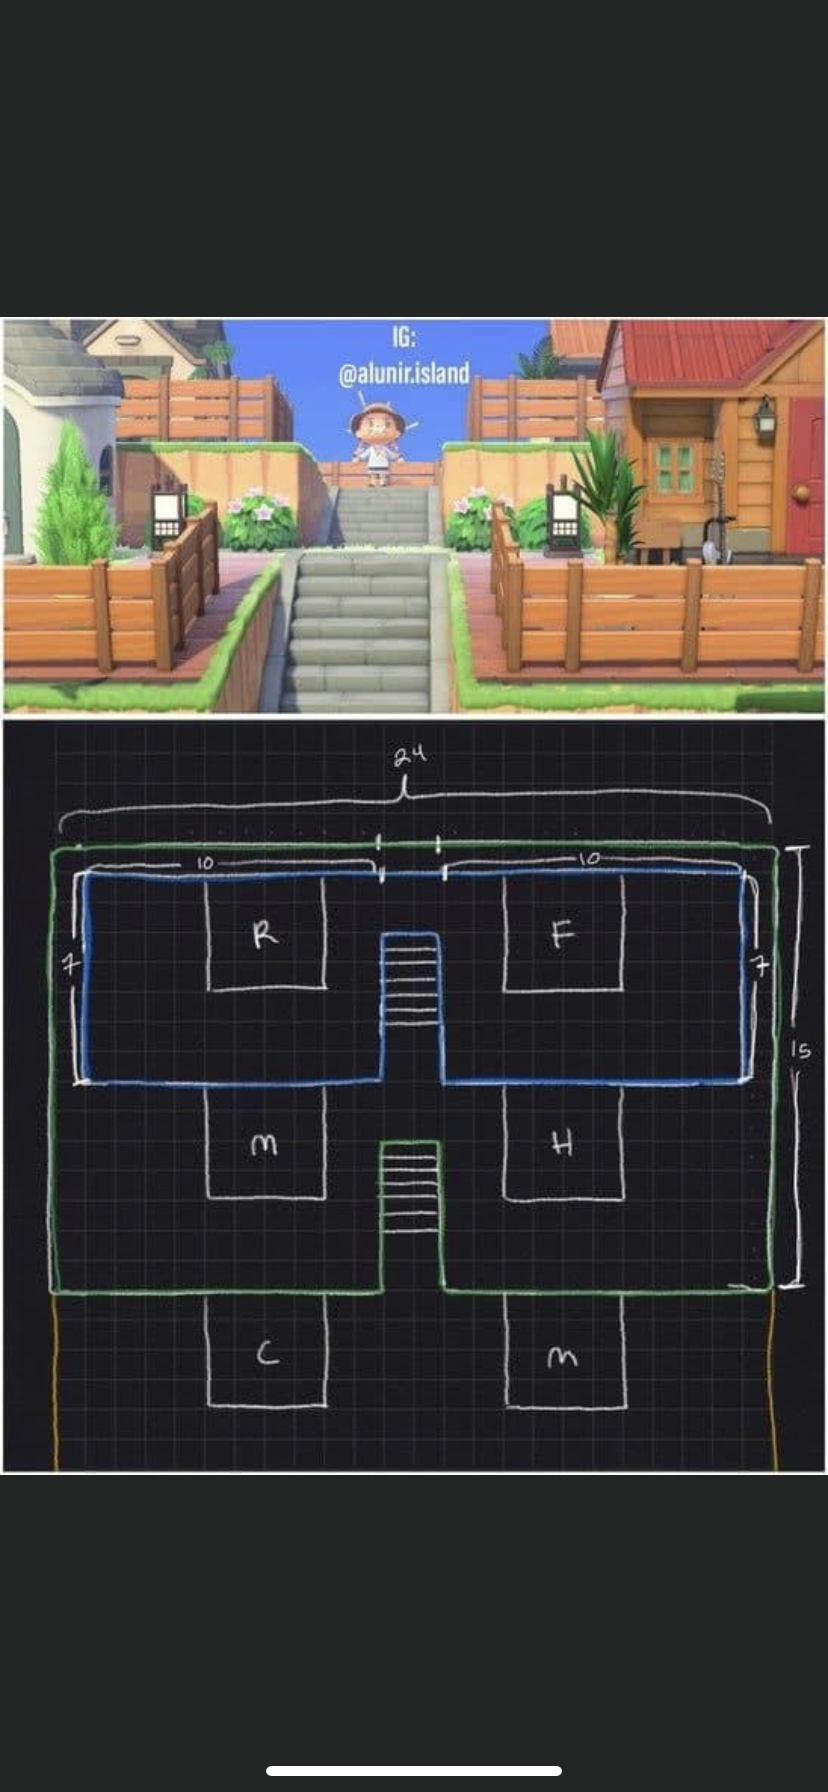 Animal Crossing Villager House Layout In 2020 Animal Crossing Villagers Animal Crossing New Animal Crossing